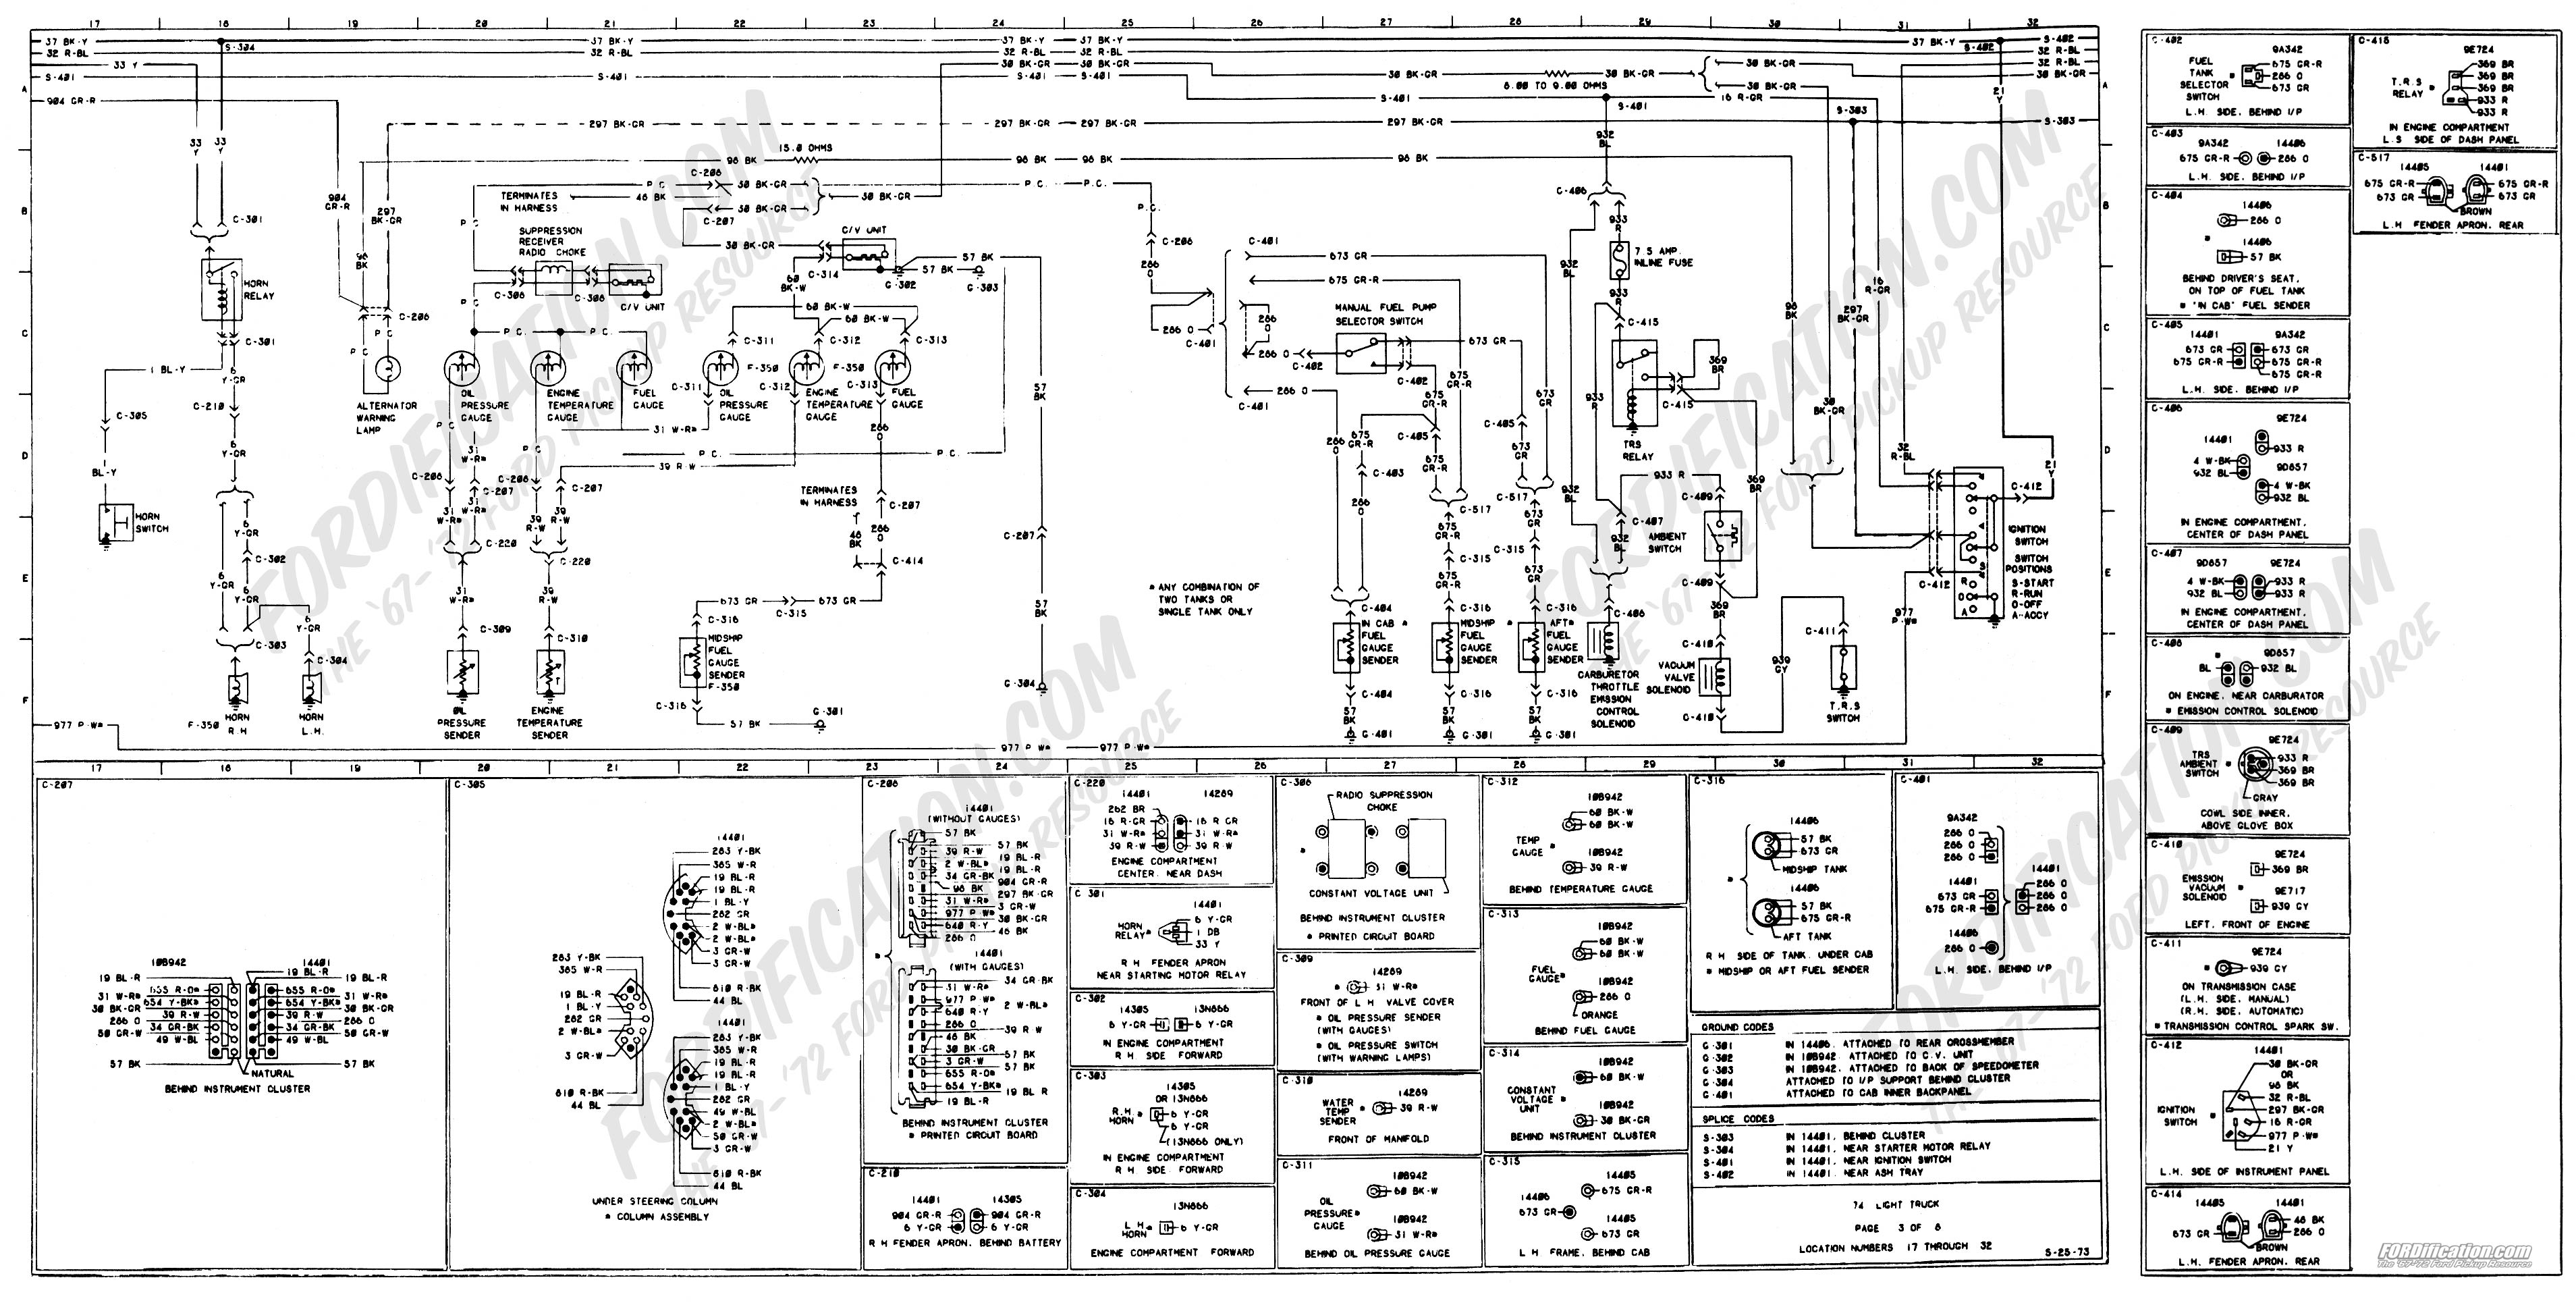 1981 ford truck wiring diagrams schematic diagrams rh ogmconsulting co 2003 F250 Wiring Diagram Ford Electrical Wiring Diagrams